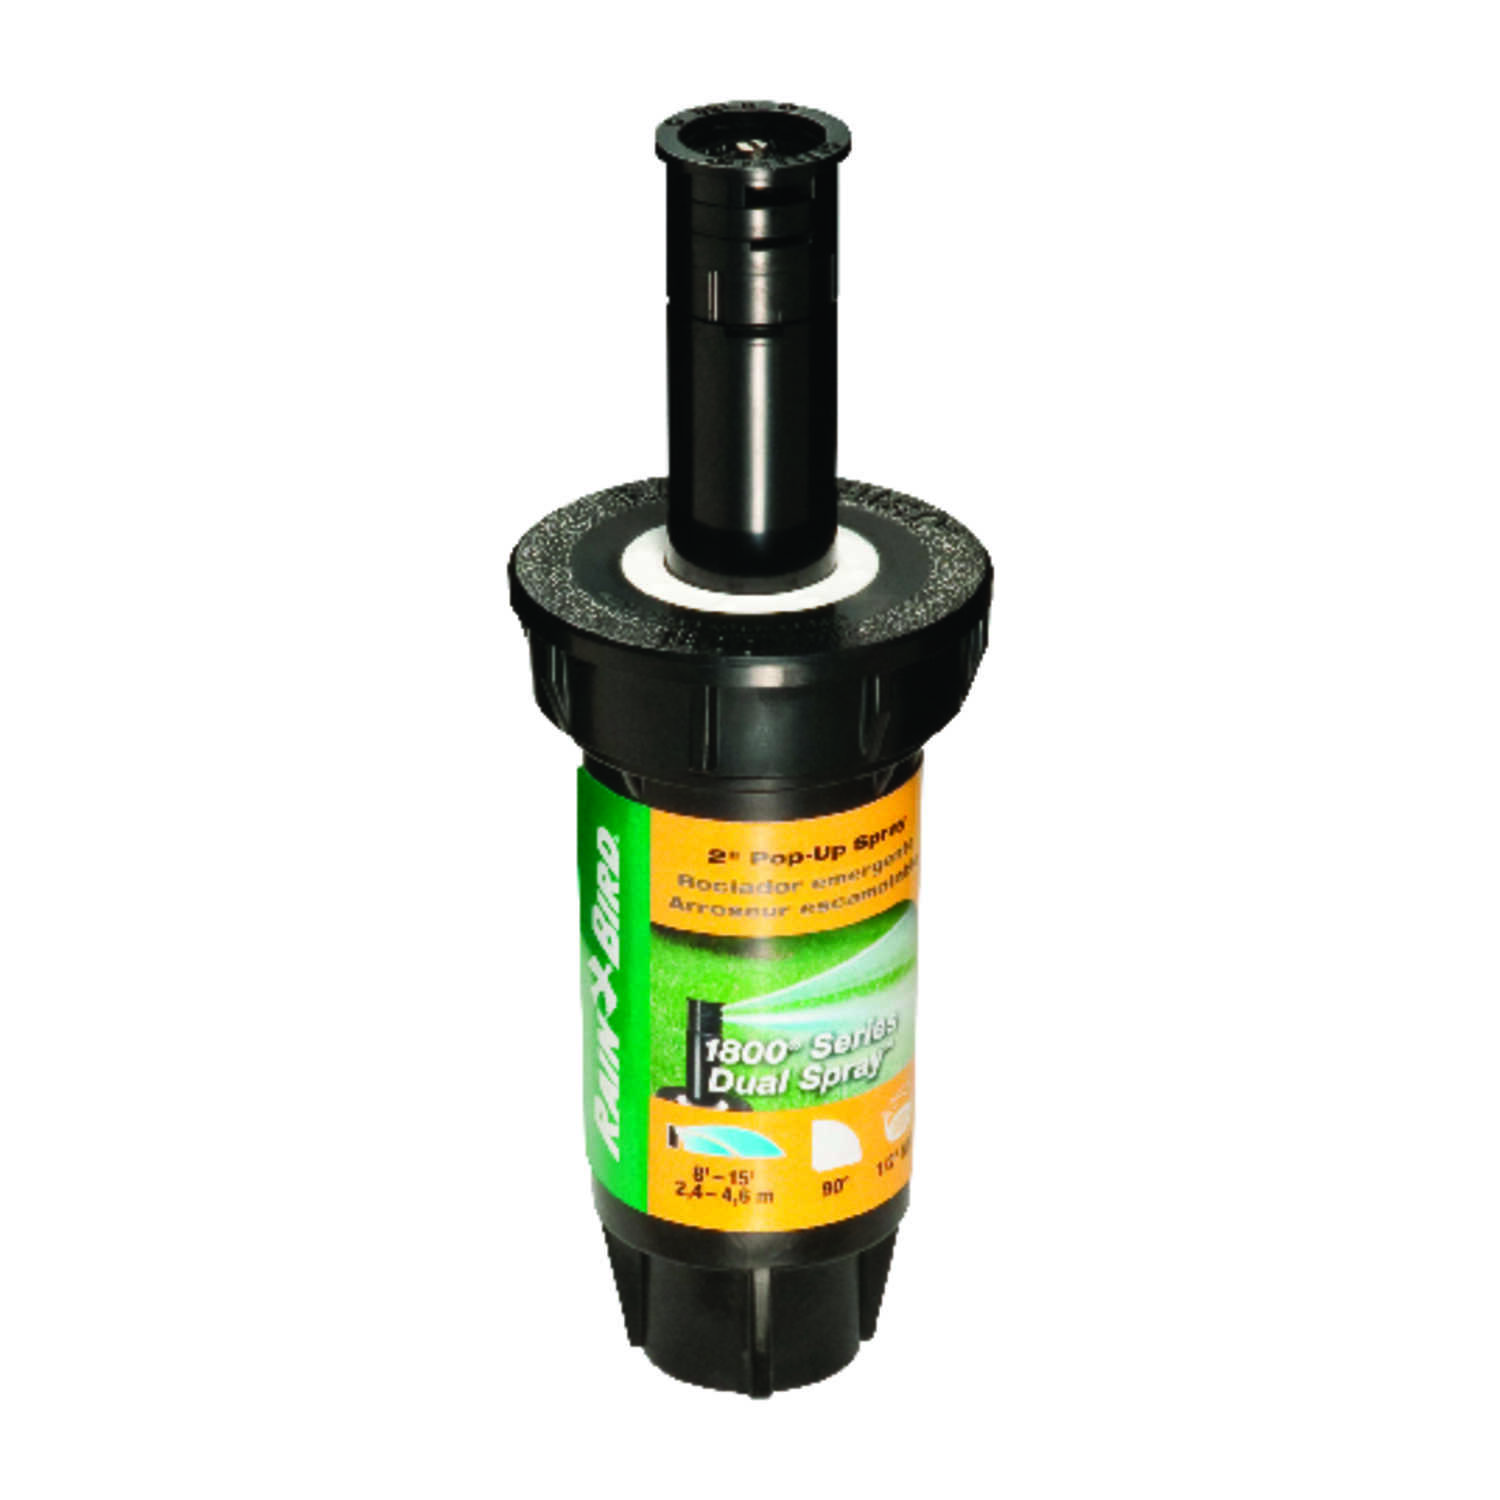 Rain Bird  1800 Series  2 in. H Quarter-Circle  Pop-Up Sprinkler